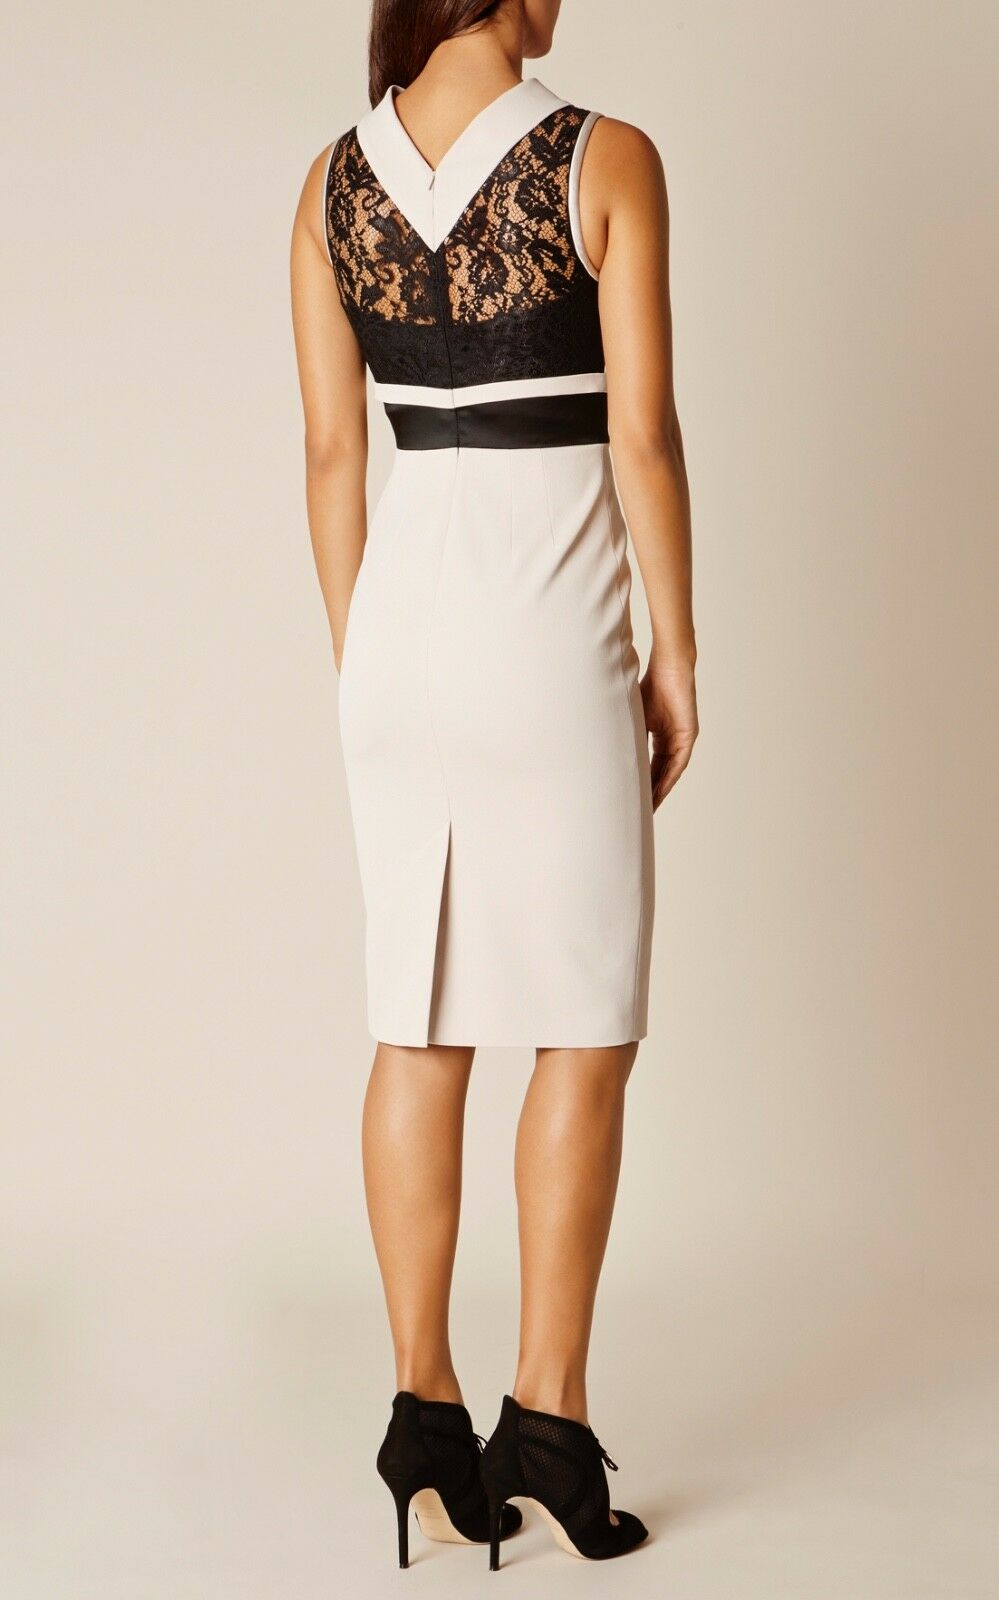 Karen Millen Dress , Größe 8 , Ivory and Lace  DZ179